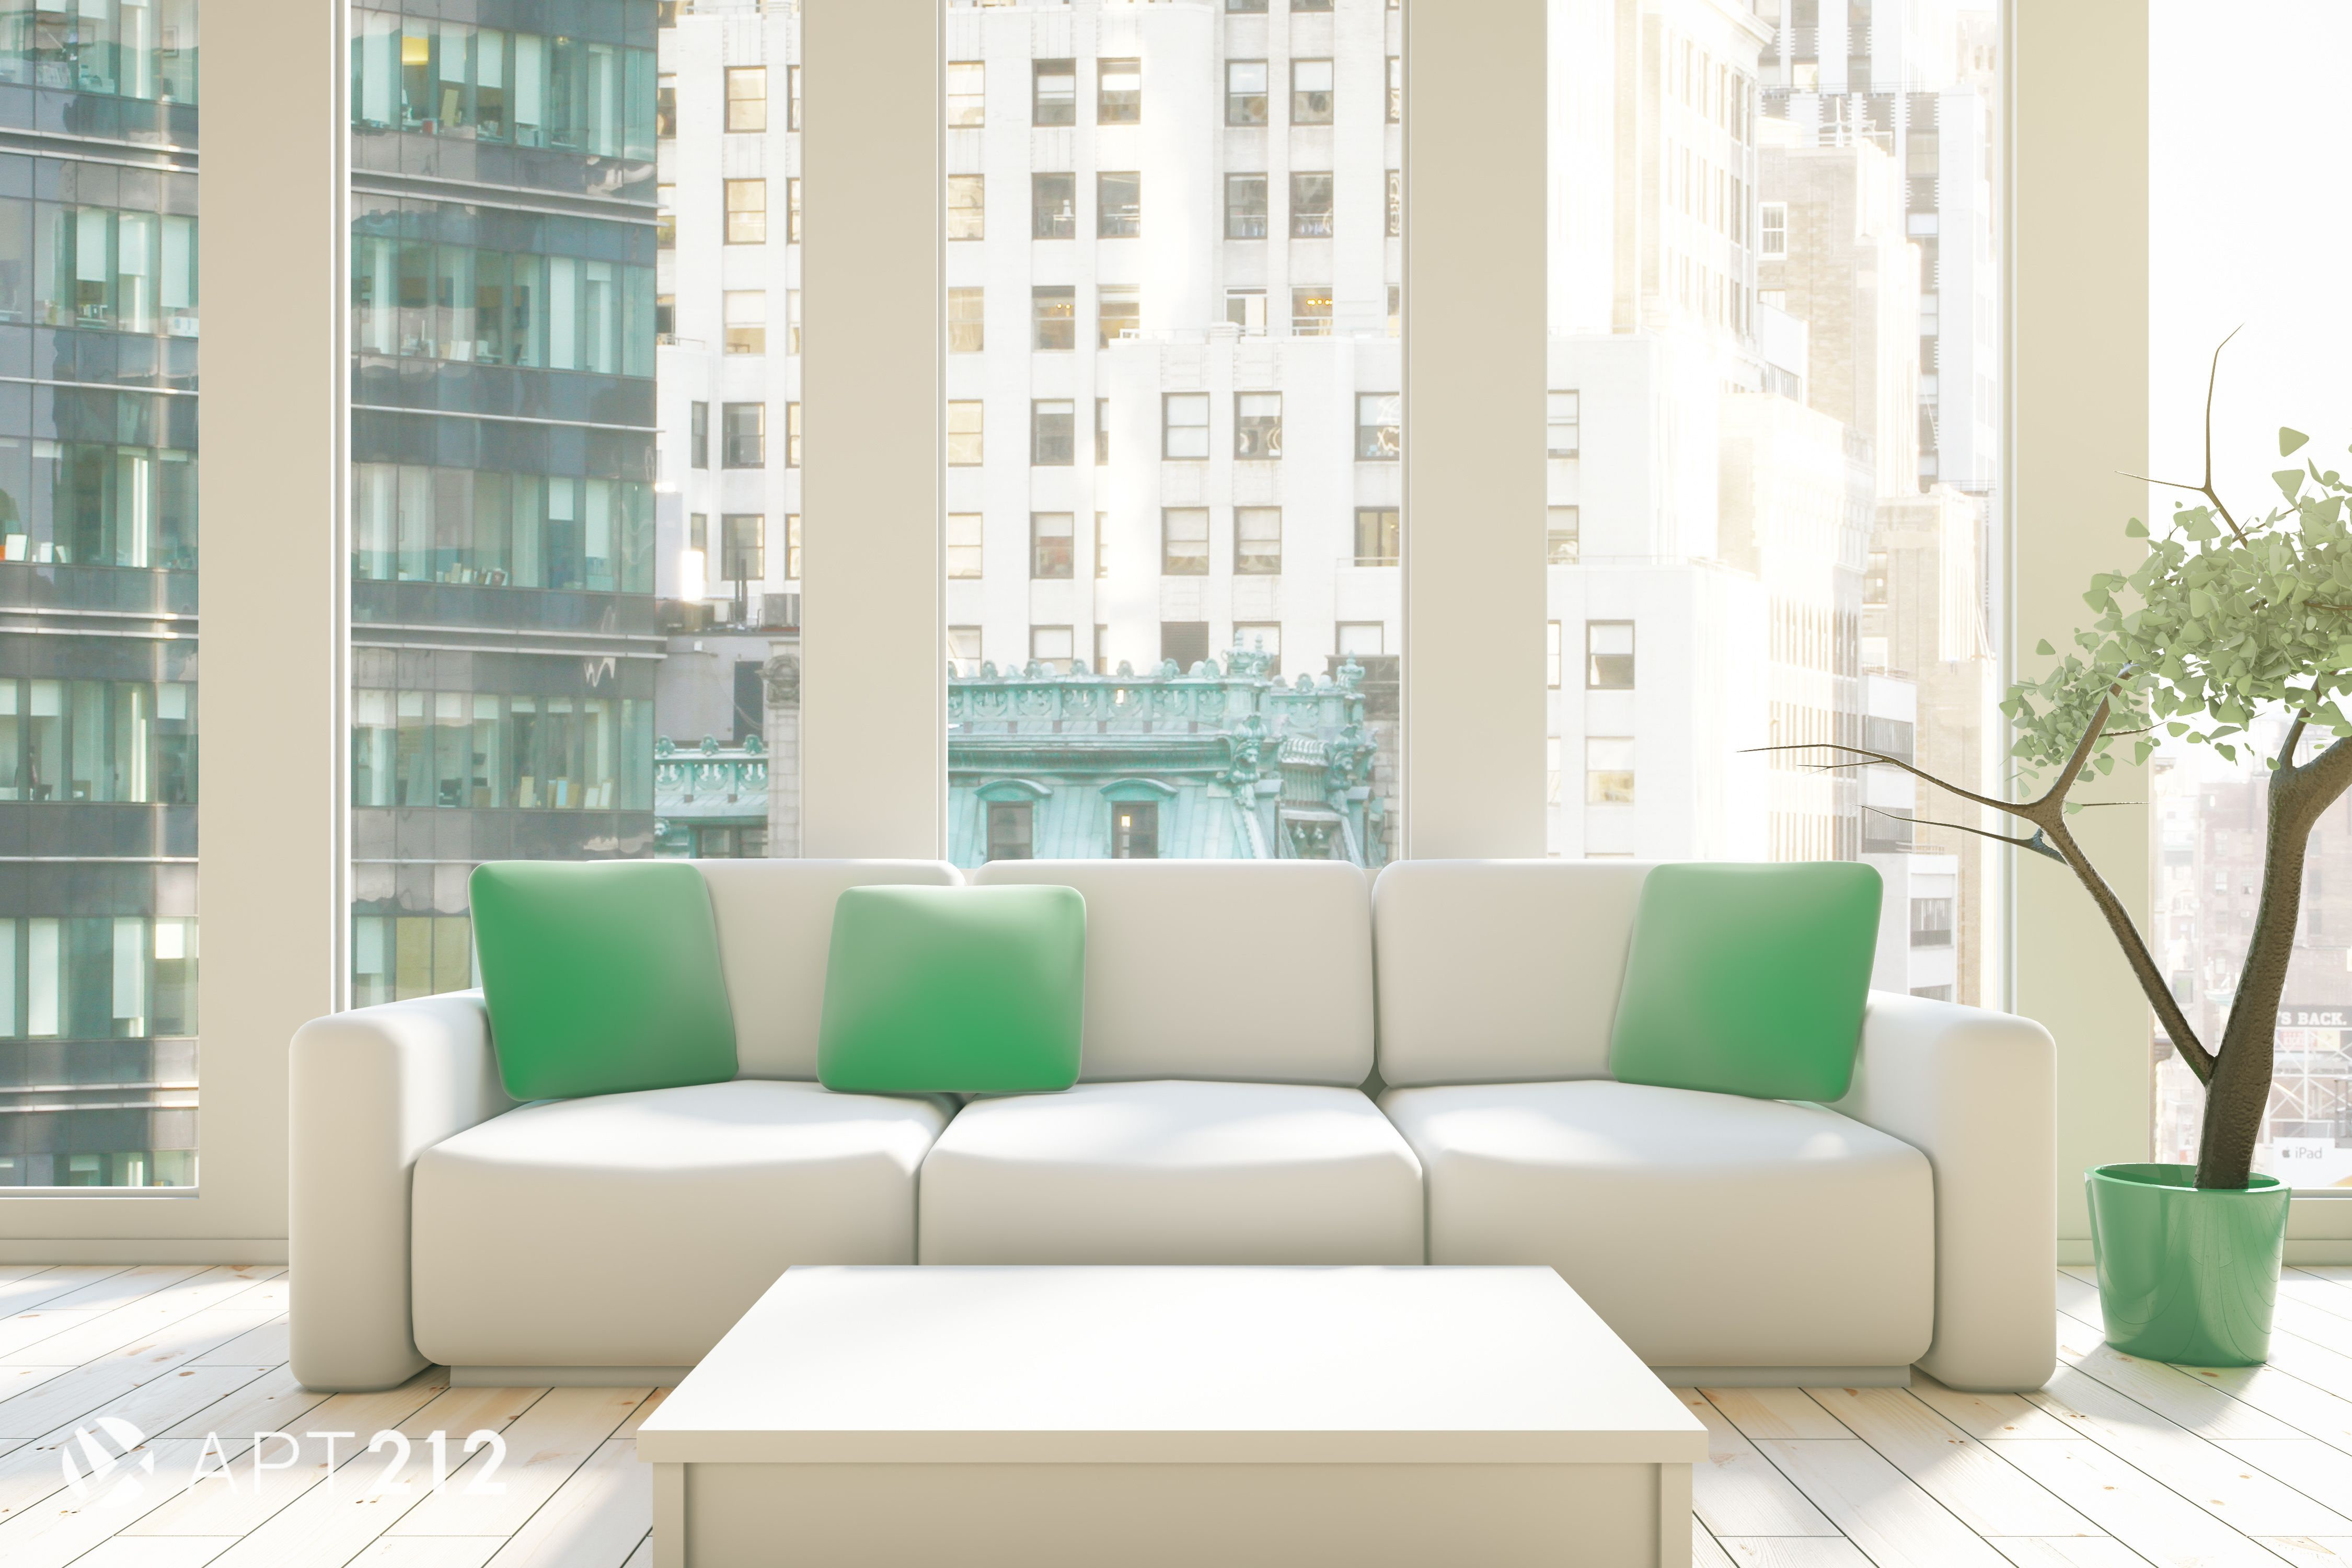 Pin by APT212 on NYC Apartments | Furnished apartment ...